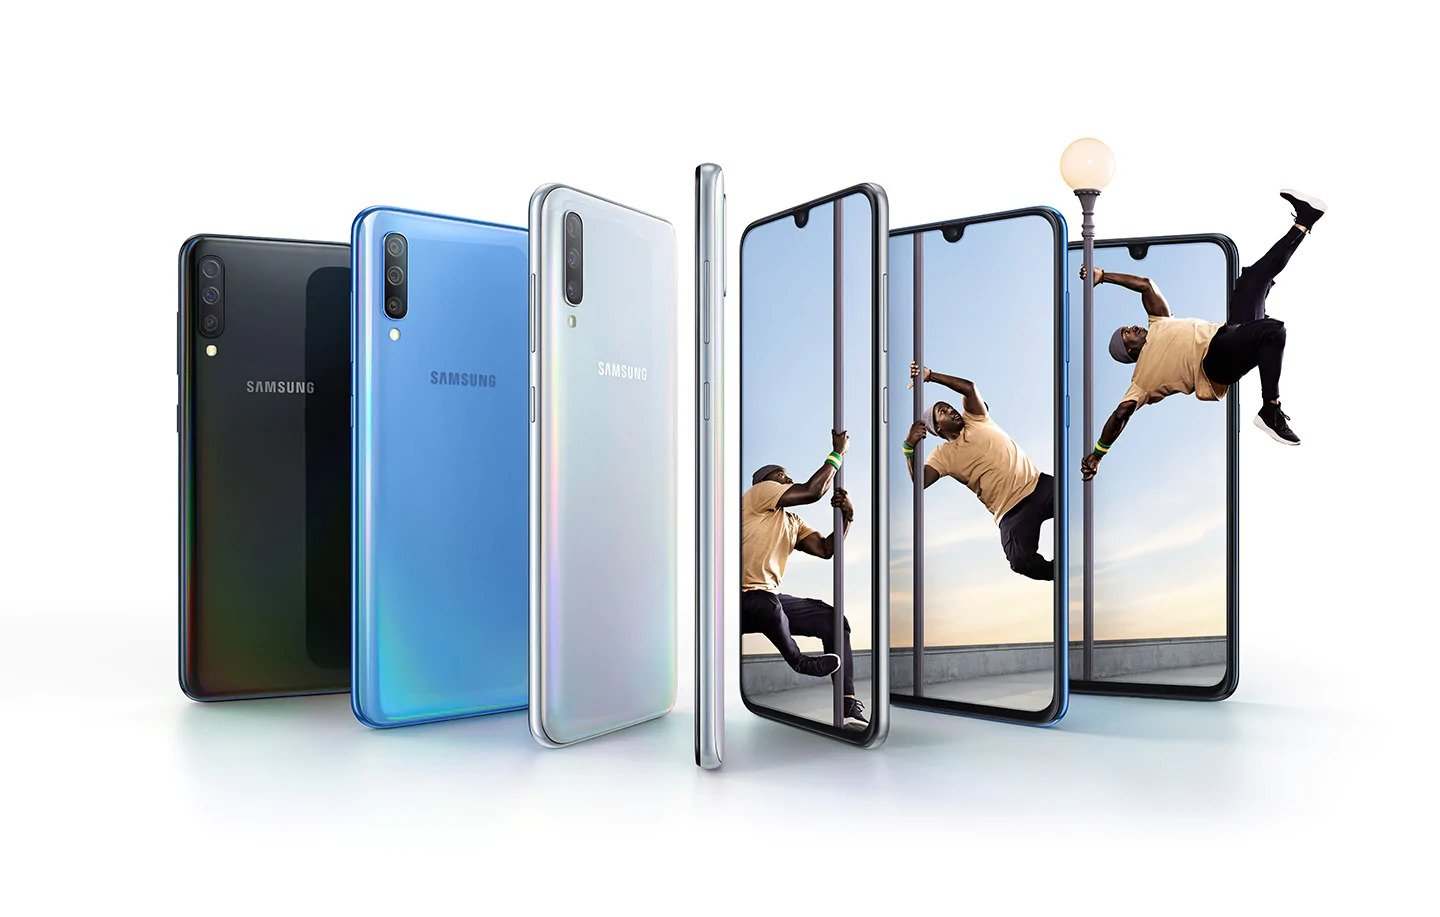 Samsung Galaxy A50s and A70 receiving One UI 2.5 update along with November 2020 Security patch